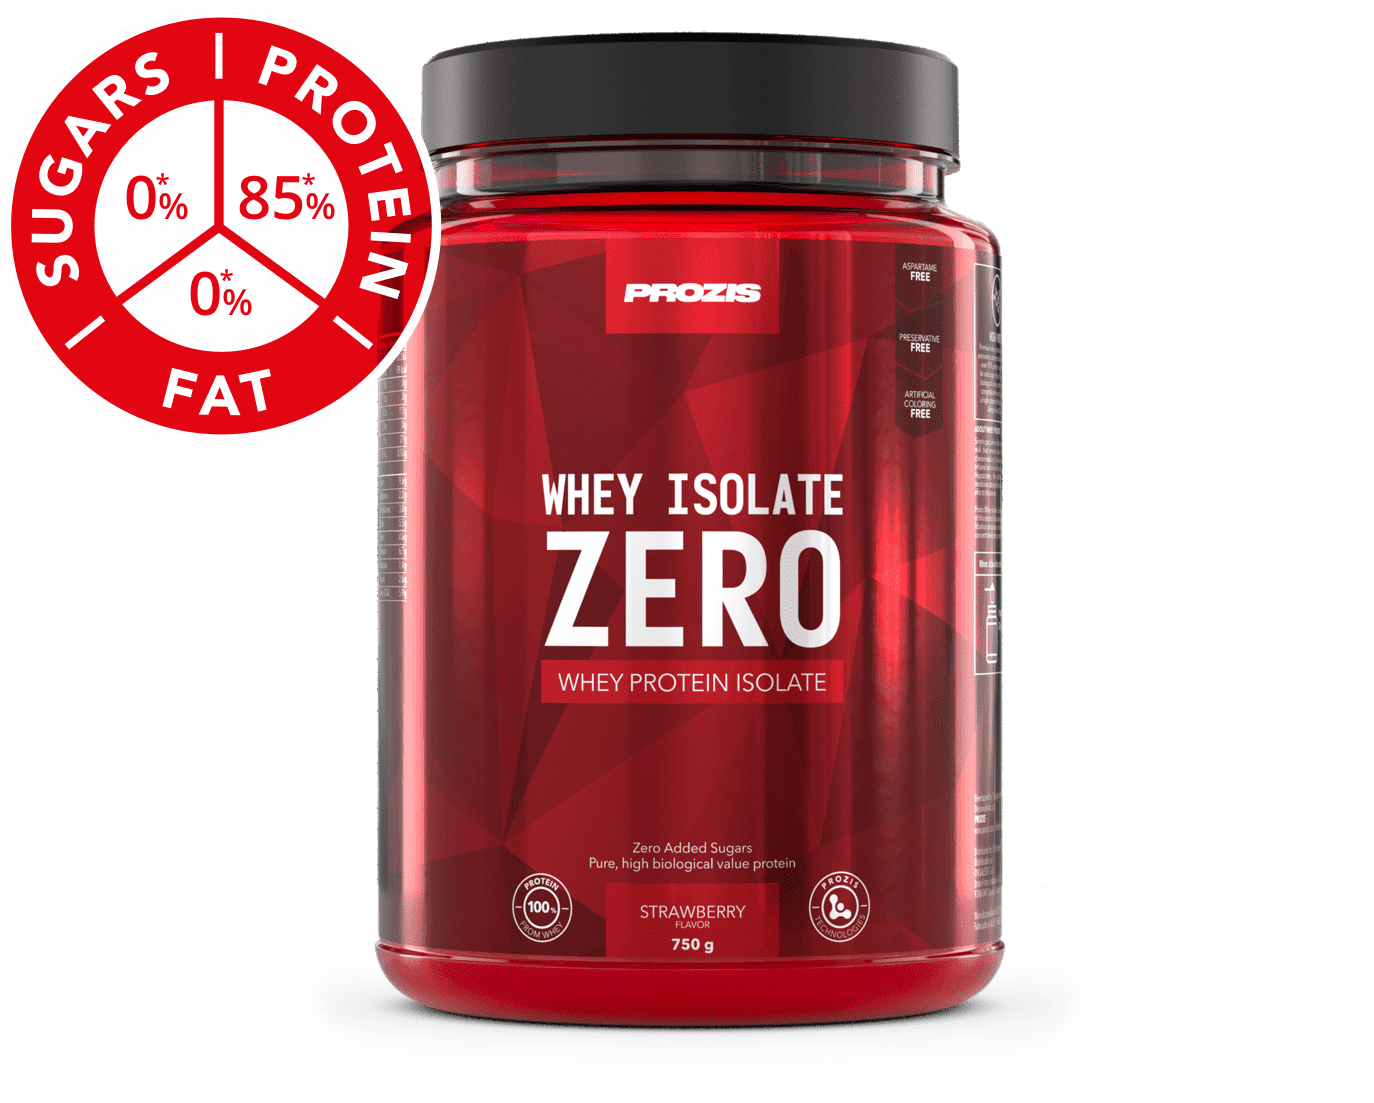 Zero Whey Isolate